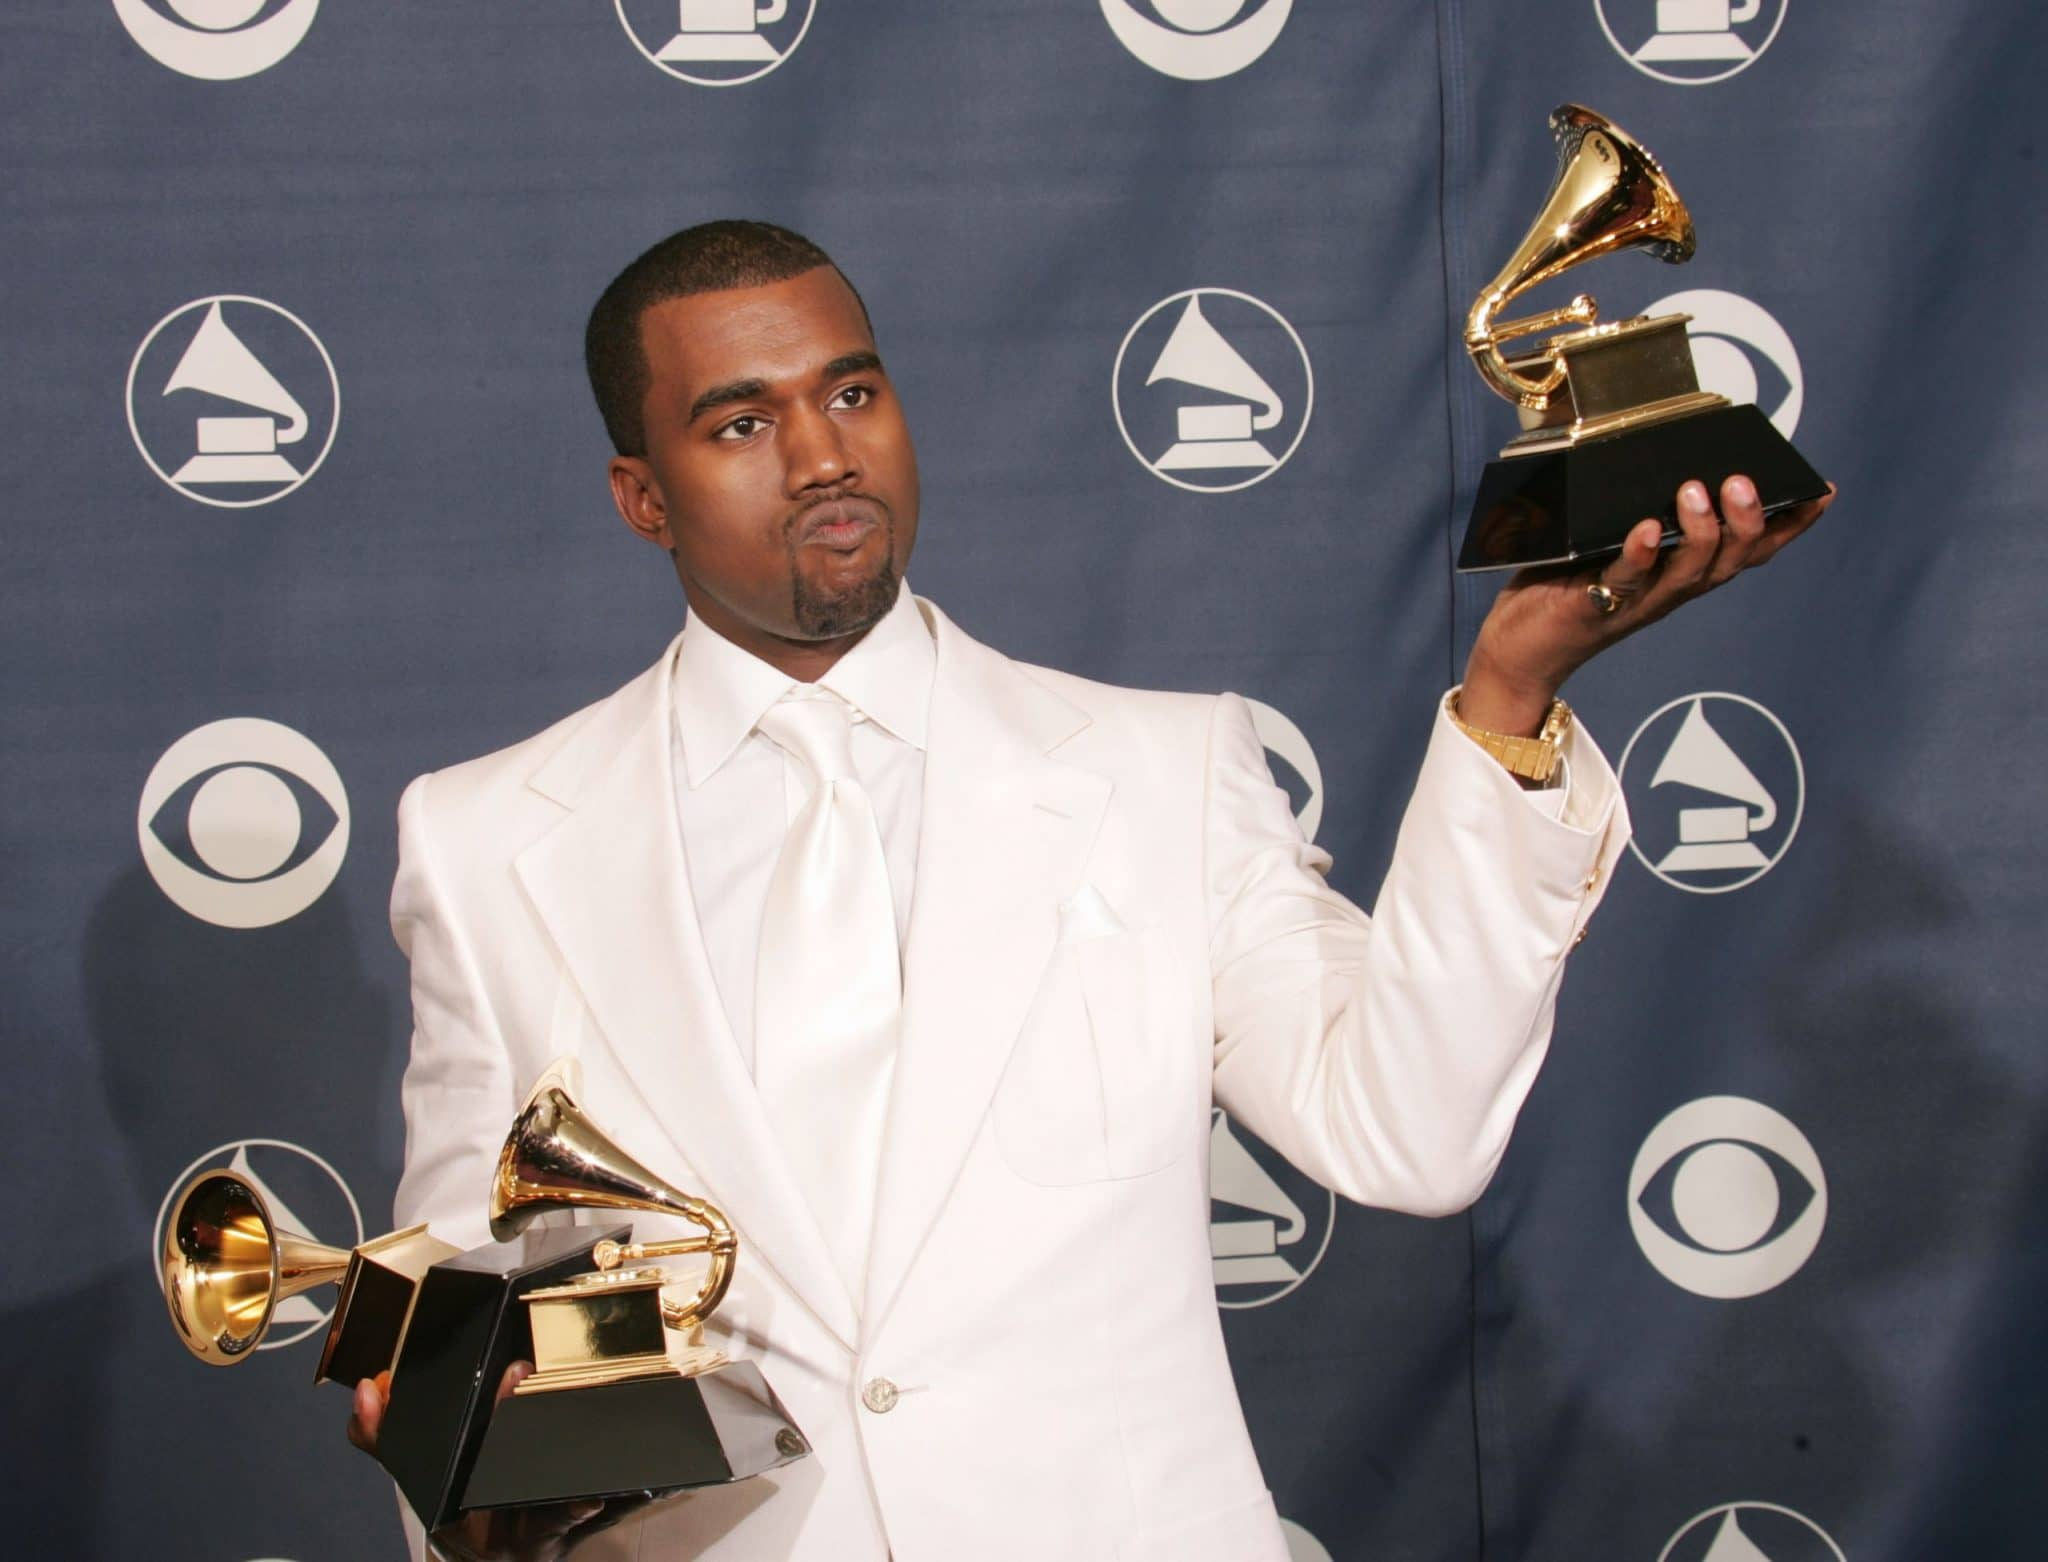 kanye west grammy kereszteny kategoria jesis is the king